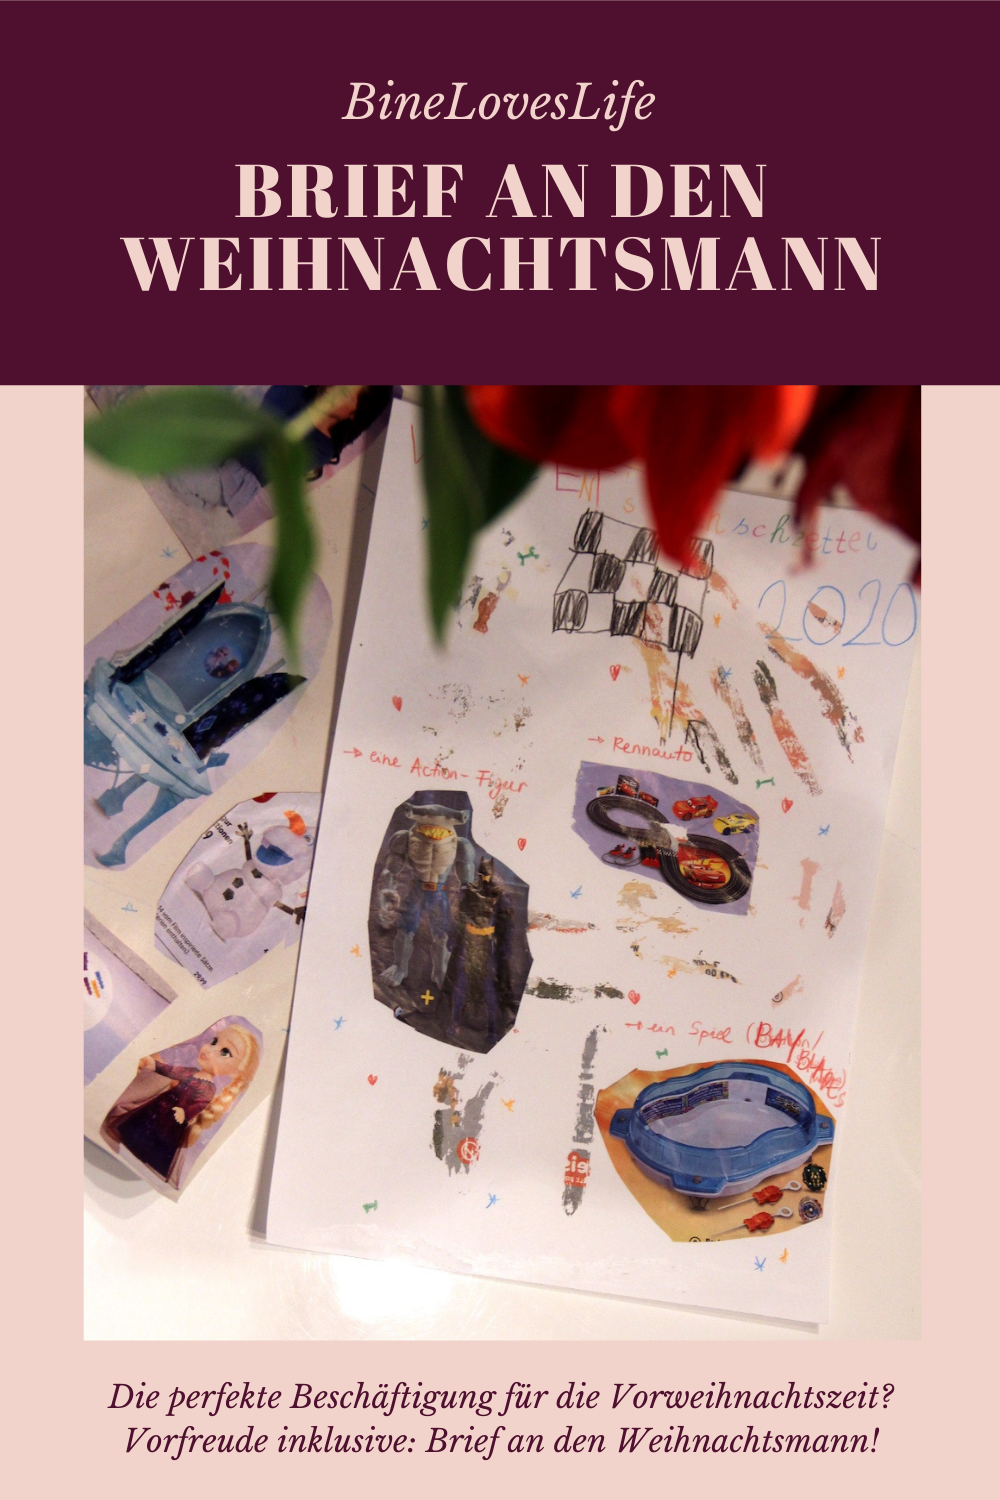 Brief an den Weihnachtsmann BineLovesLife